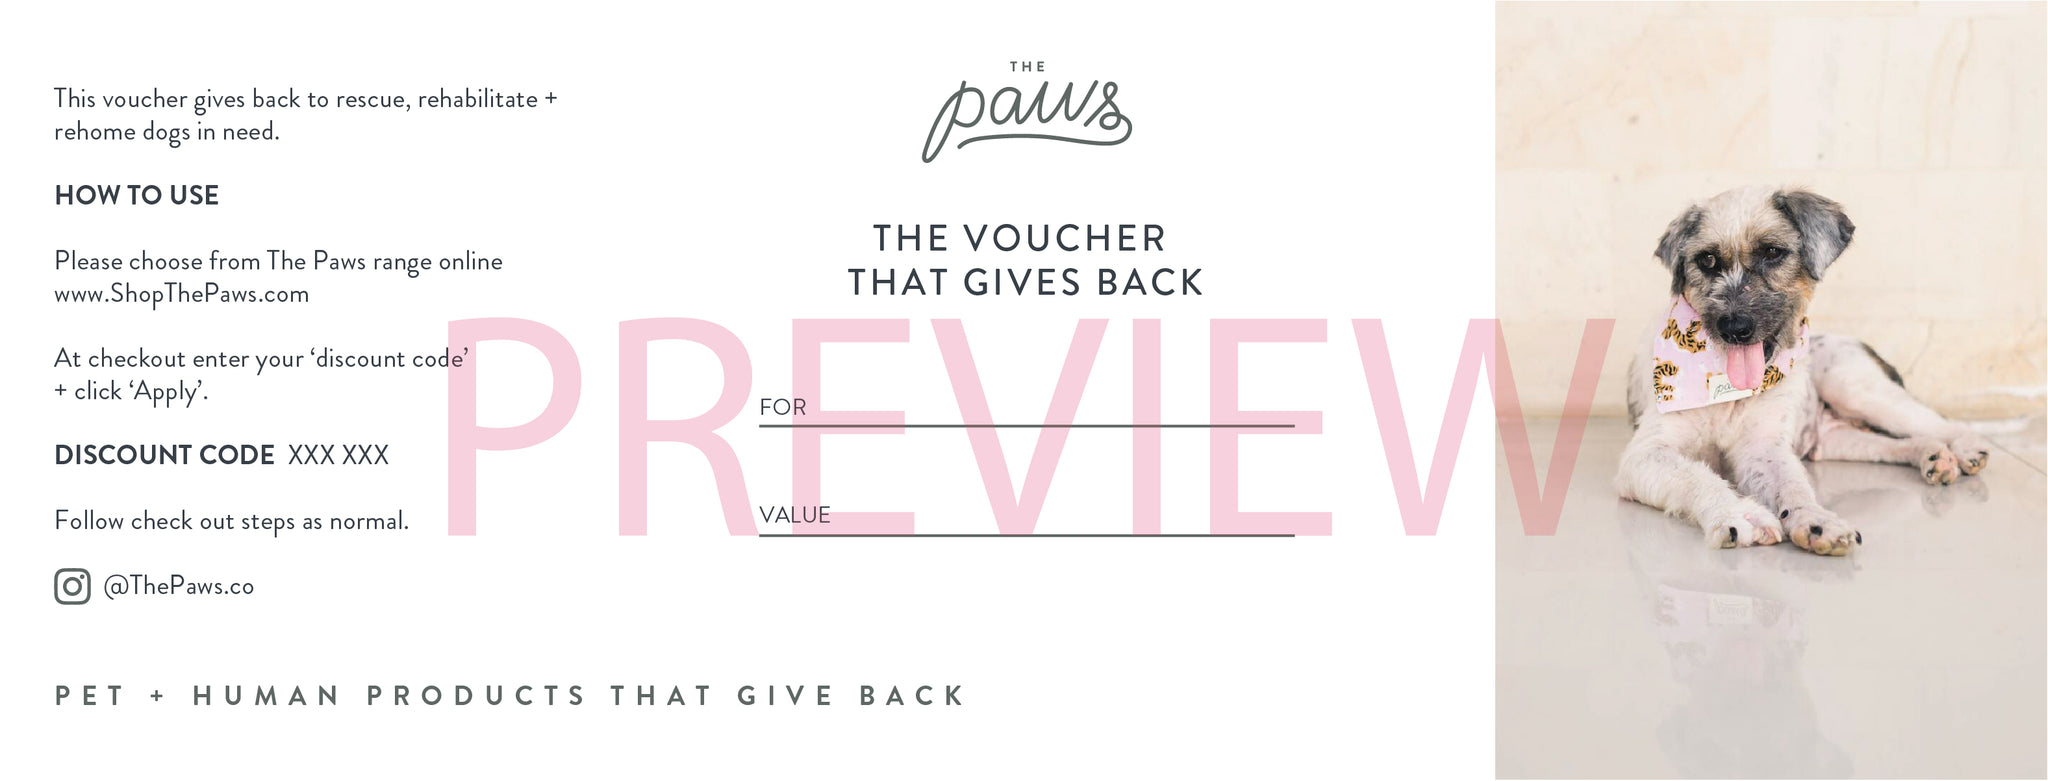 Vouchers that Give Back